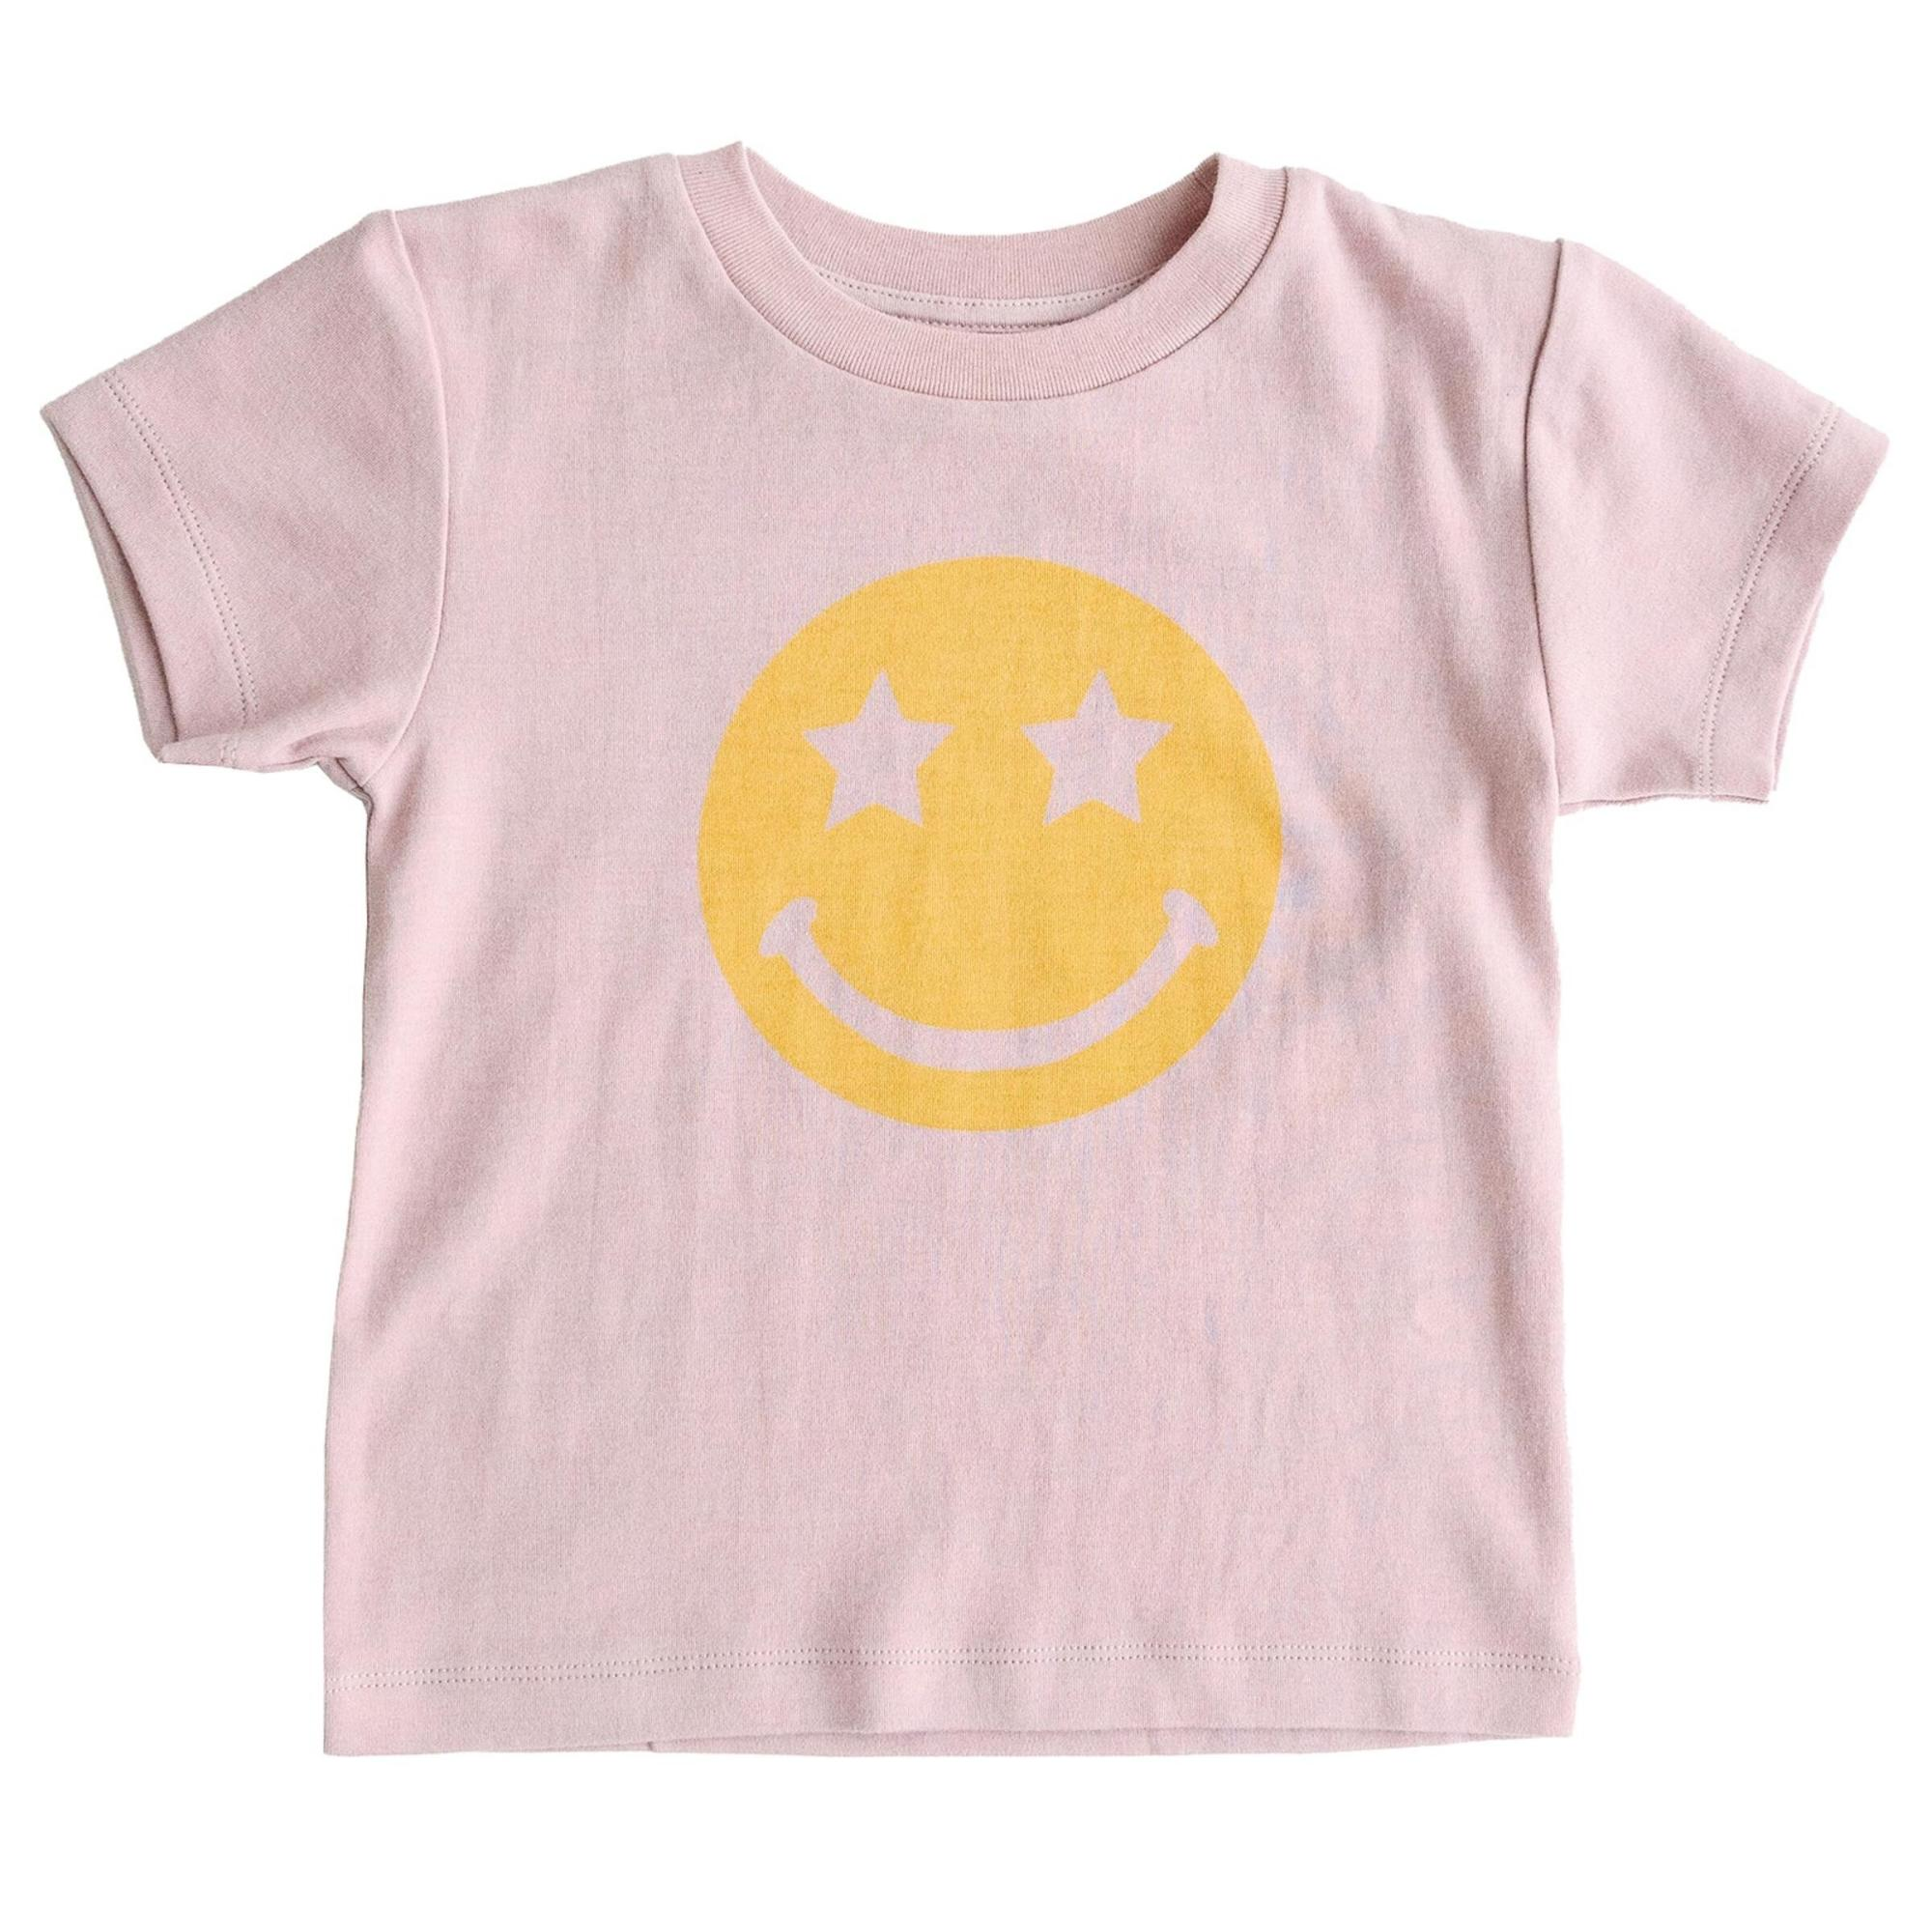 Bizz x Siss Graphic S/S Tee in Smiley Face